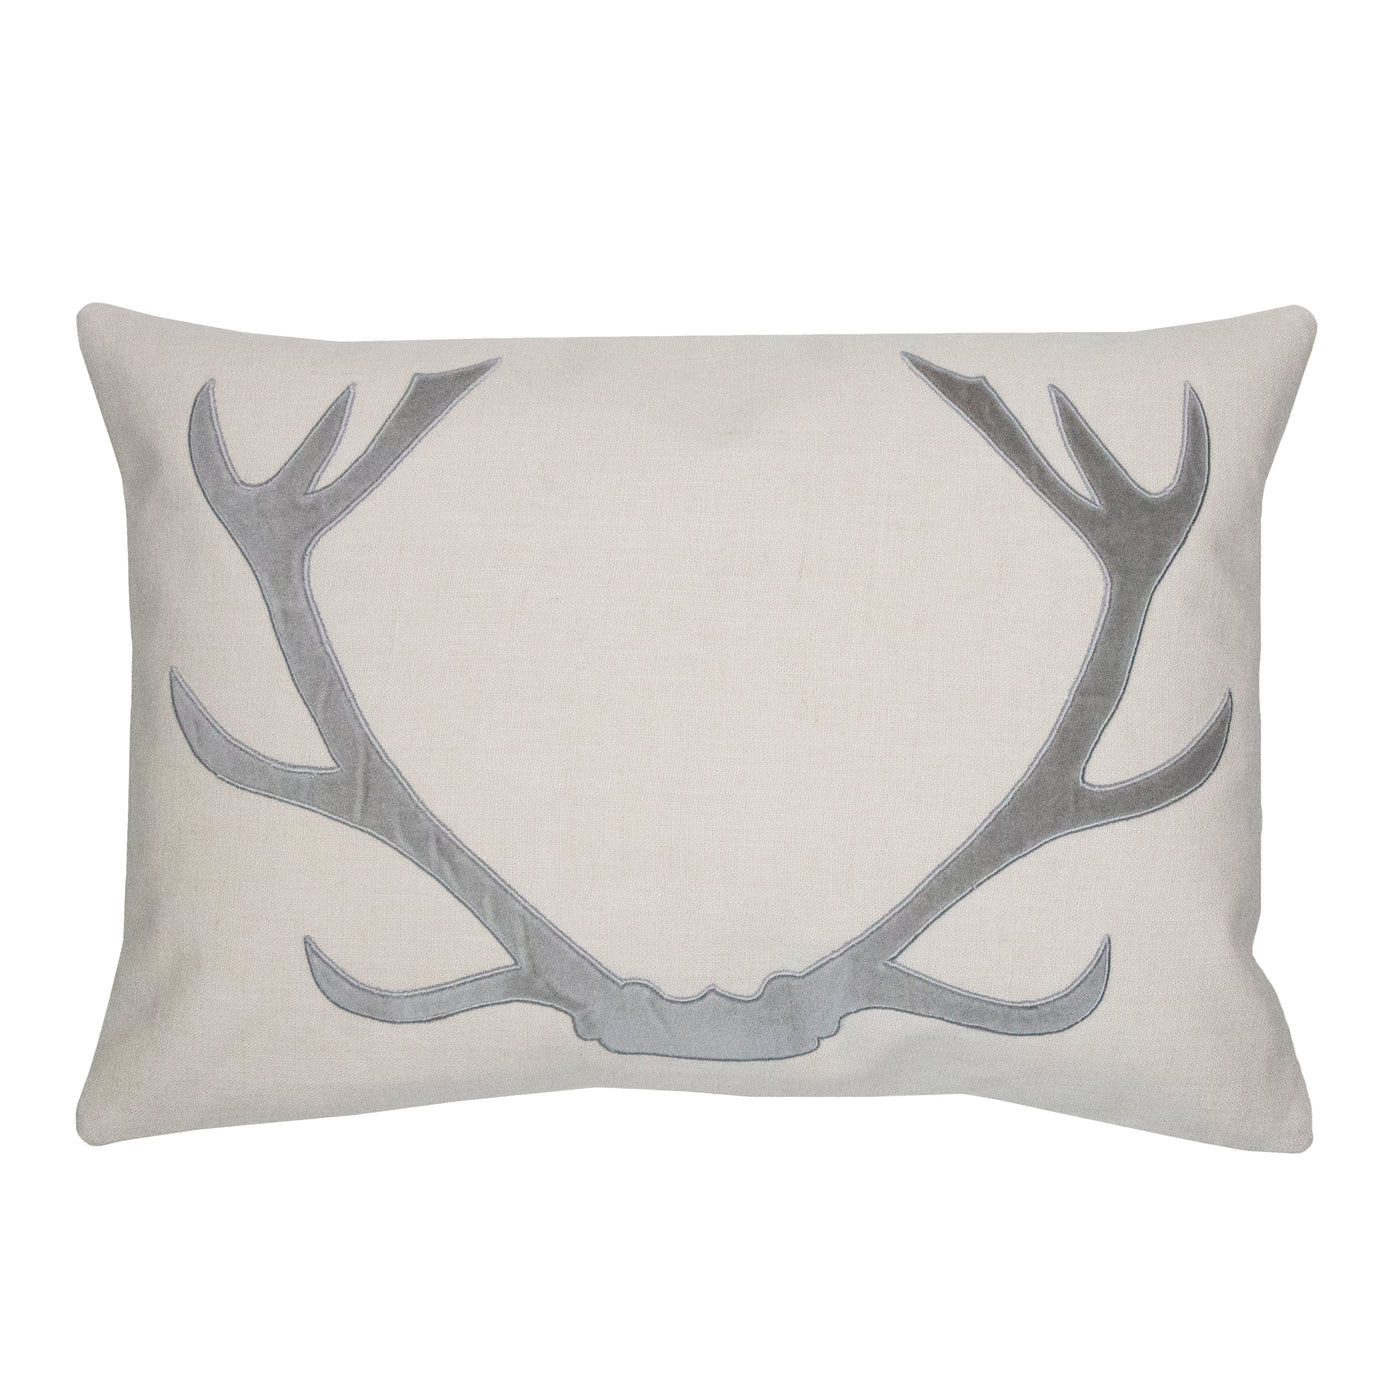 Vixen Pillow - Gray